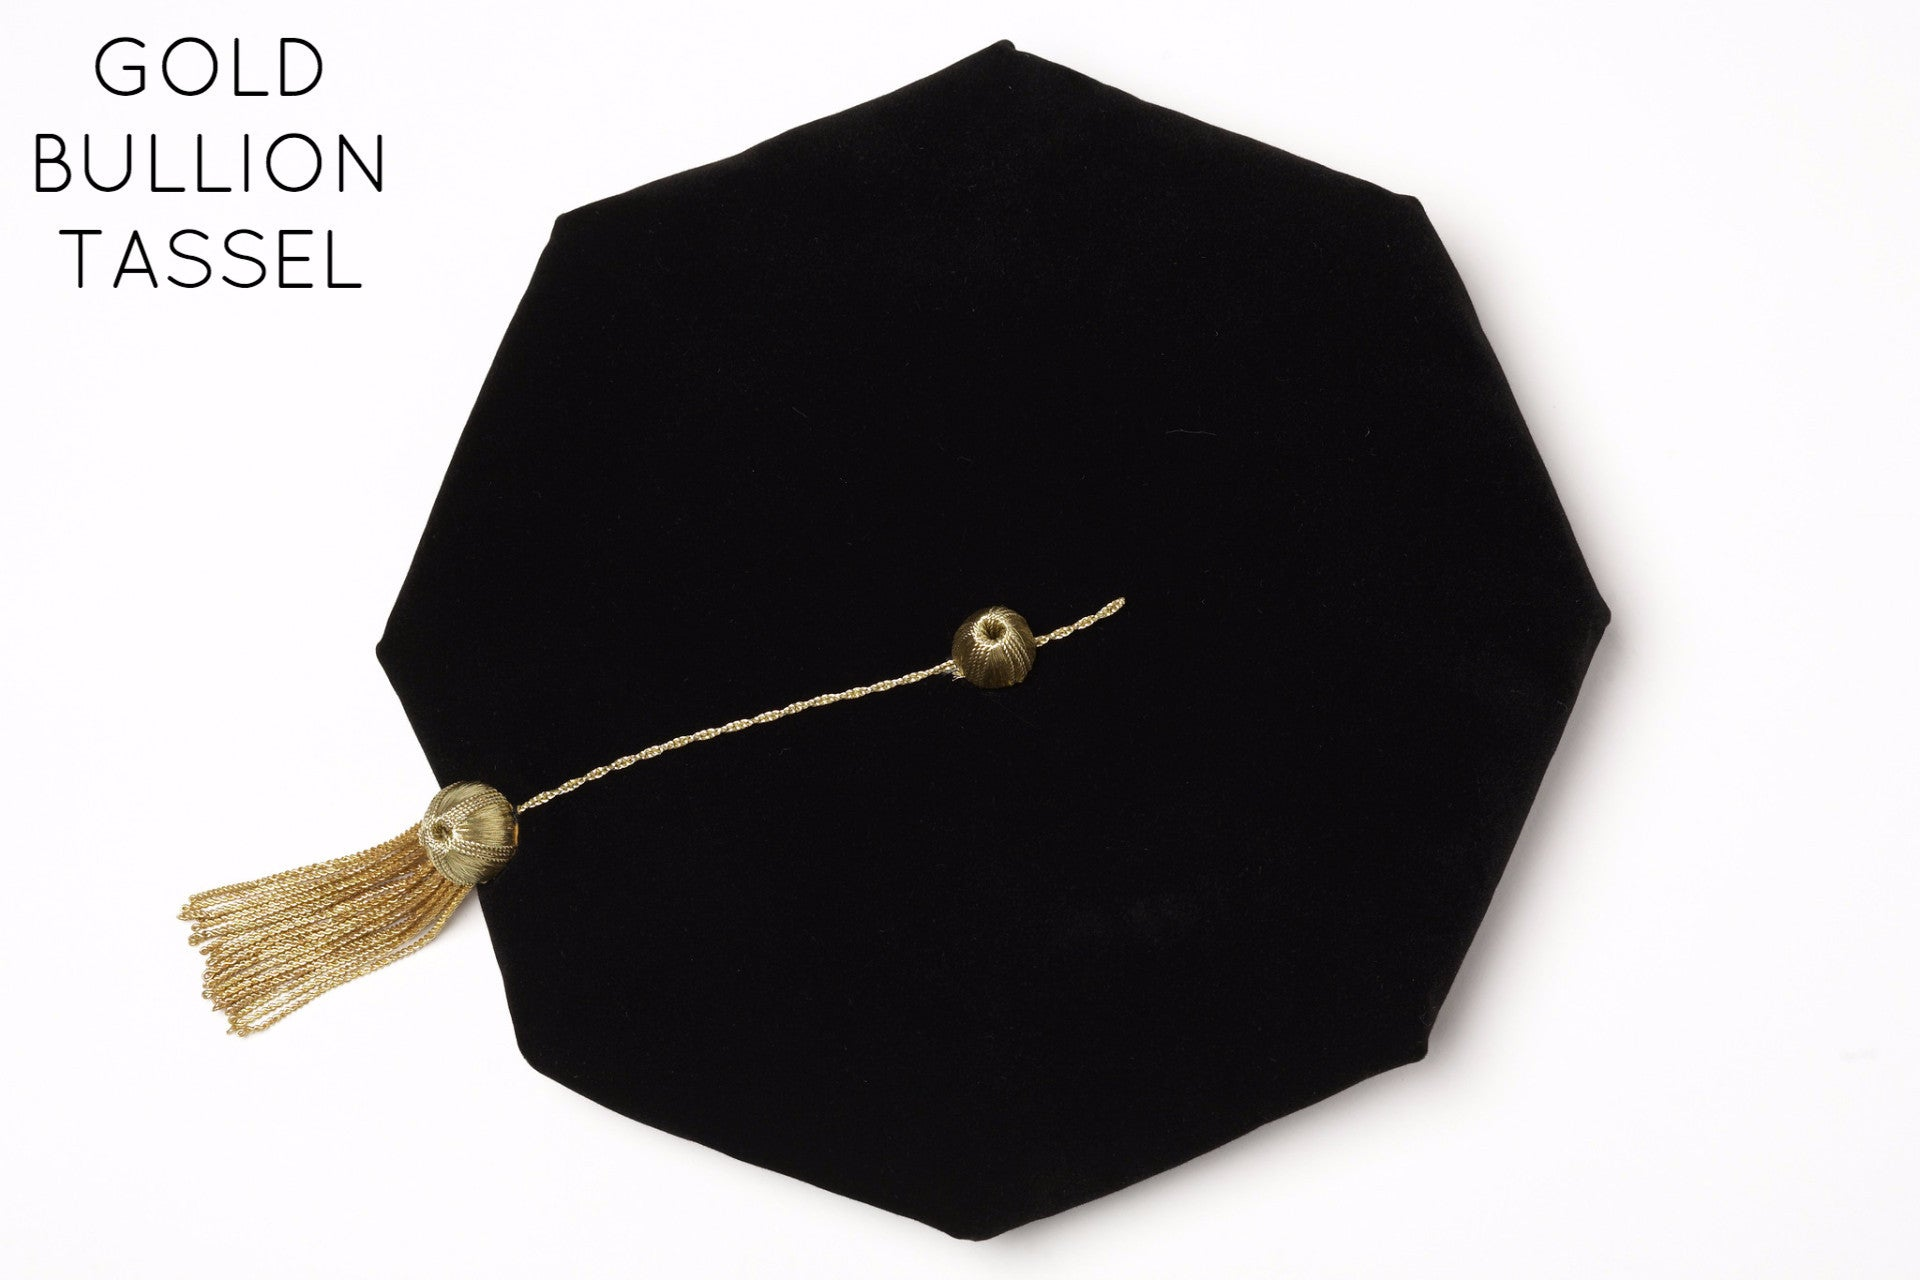 Stanford Complete Doctoral Regalia - Velvet Cap with Gold Bullion Tassel